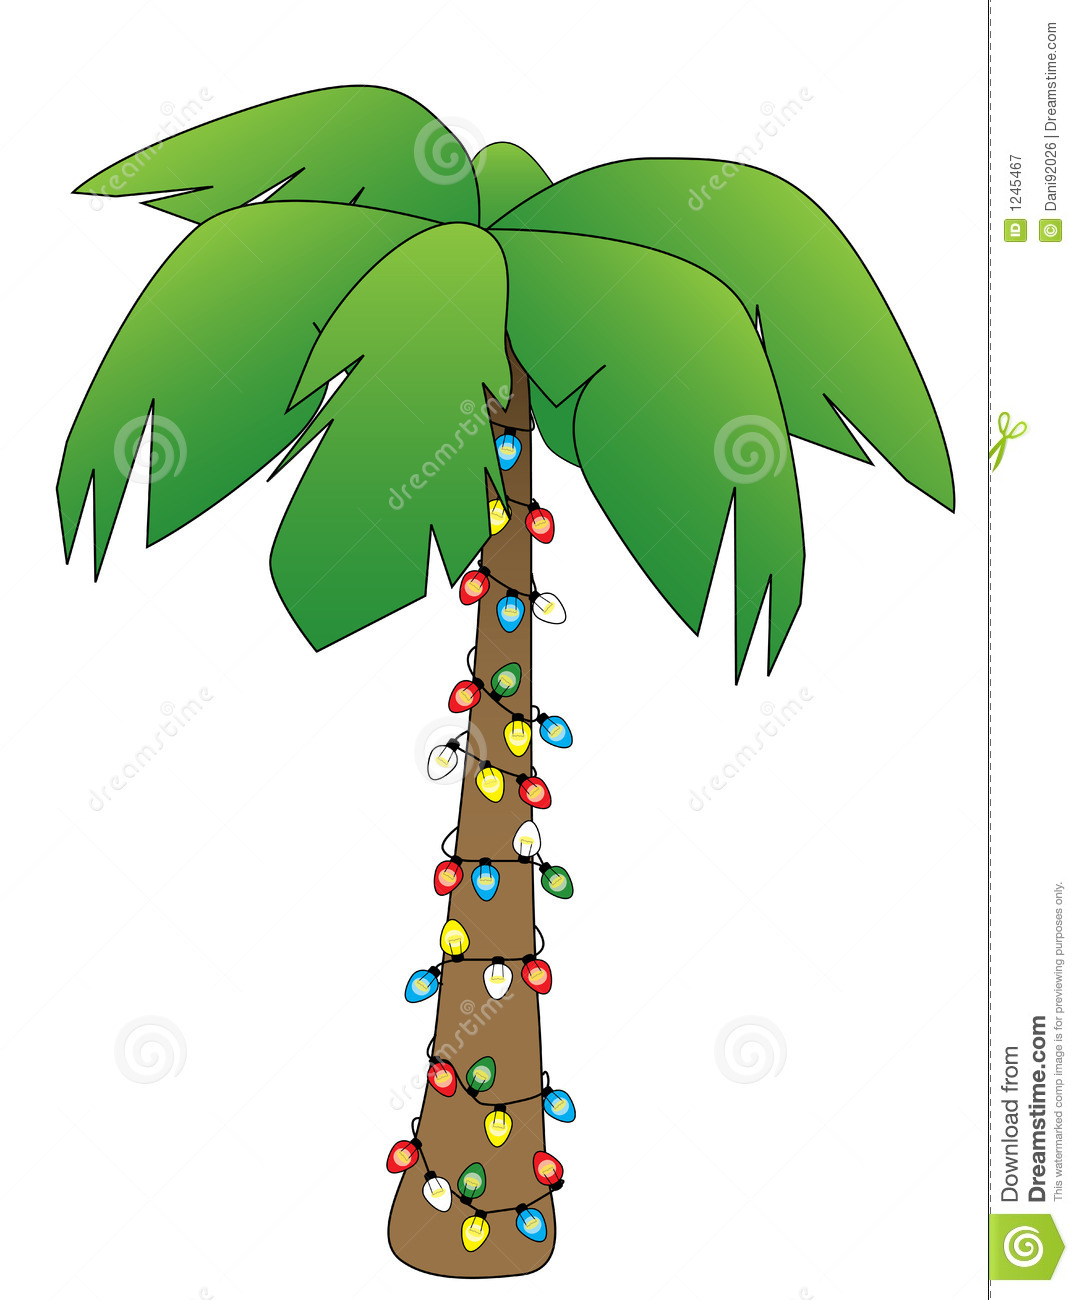 Christmas clipart palm trees lighting.